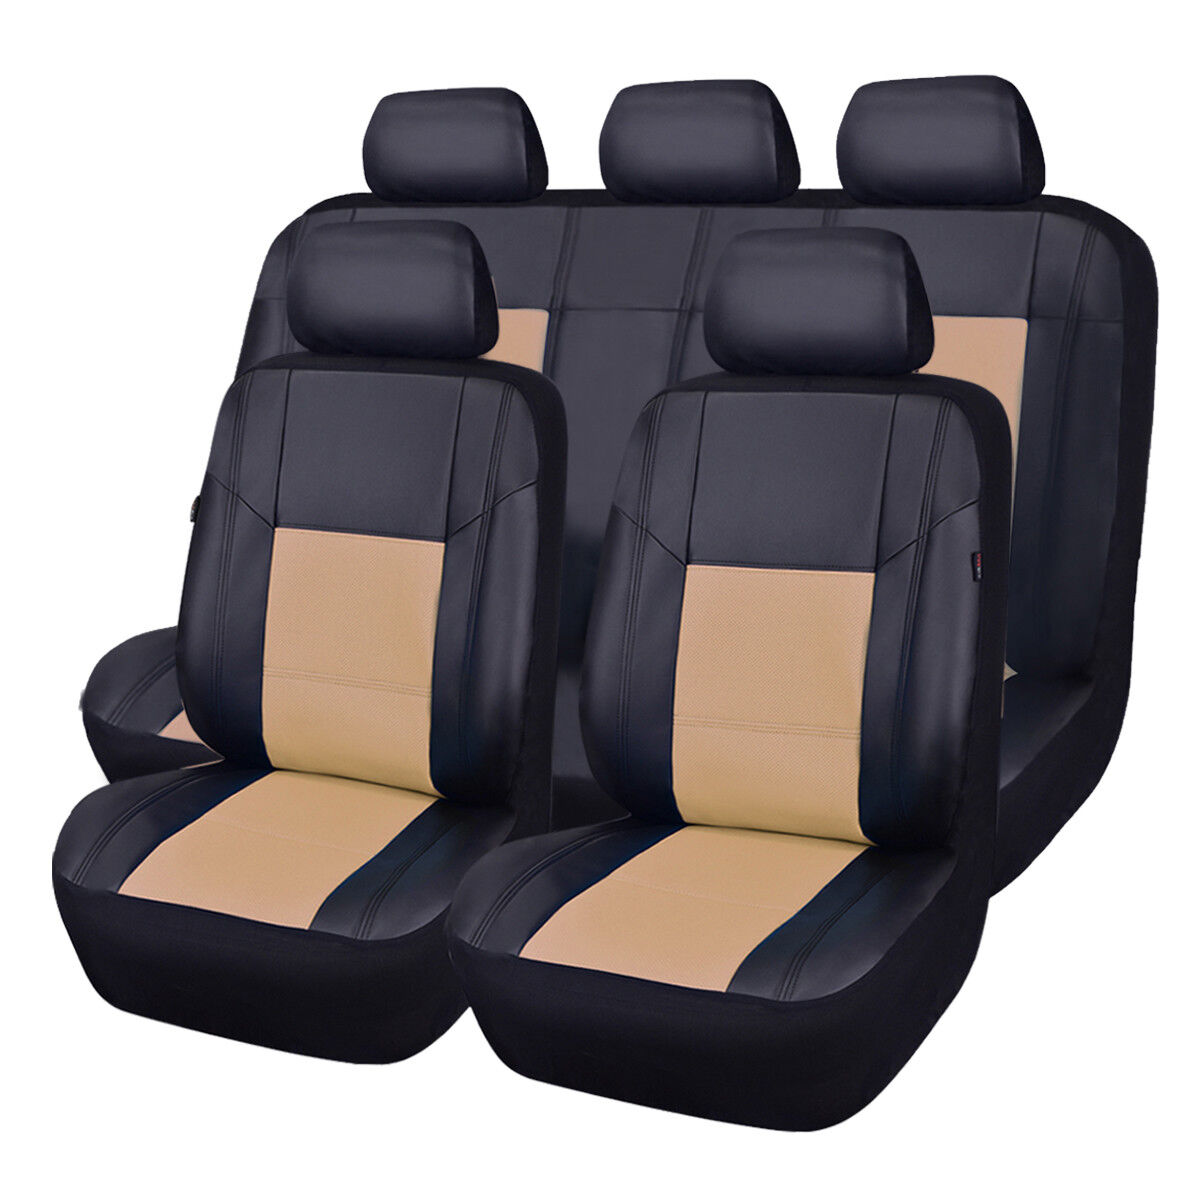 LJ 11PCS, Black and Red for suvs,Van,Trucks,Airbag Compatible,Inside Zipper Design and Reserved Opening Holes CAR PASS Universal FIT Piping Leather Car Seat Cover